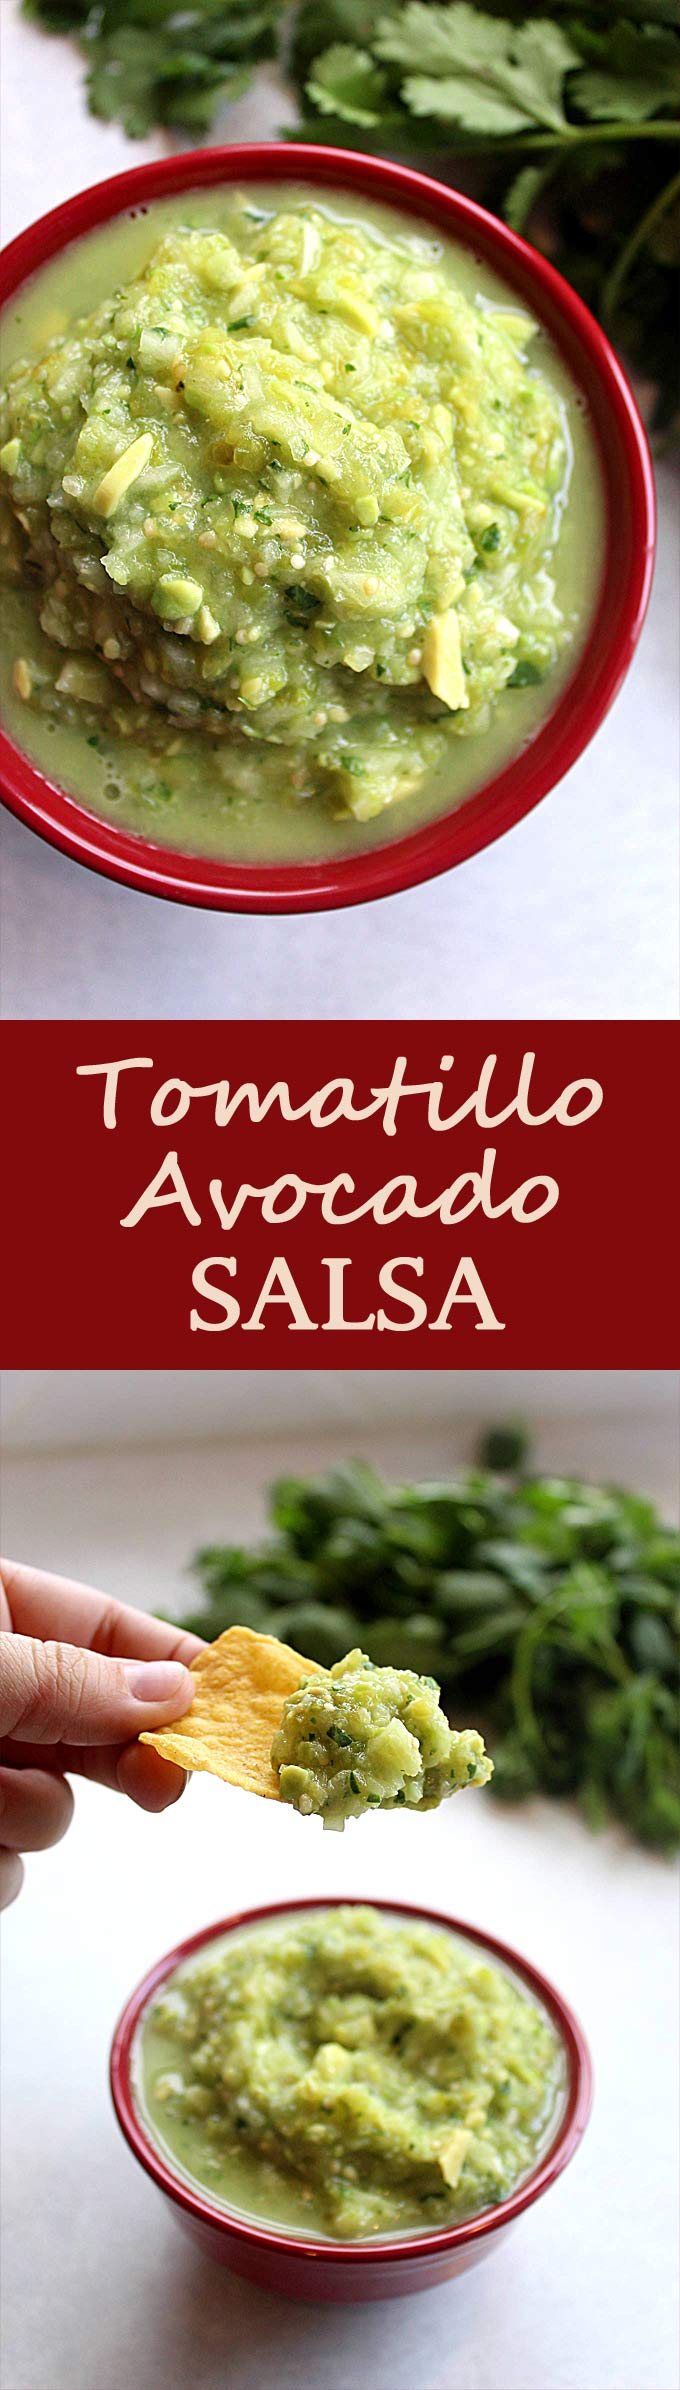 Roasted Tomatillo Avocado Salsa | Salsa Verde | Vegan | Vegetarian | Green Salsa | Tomatillo Sauce